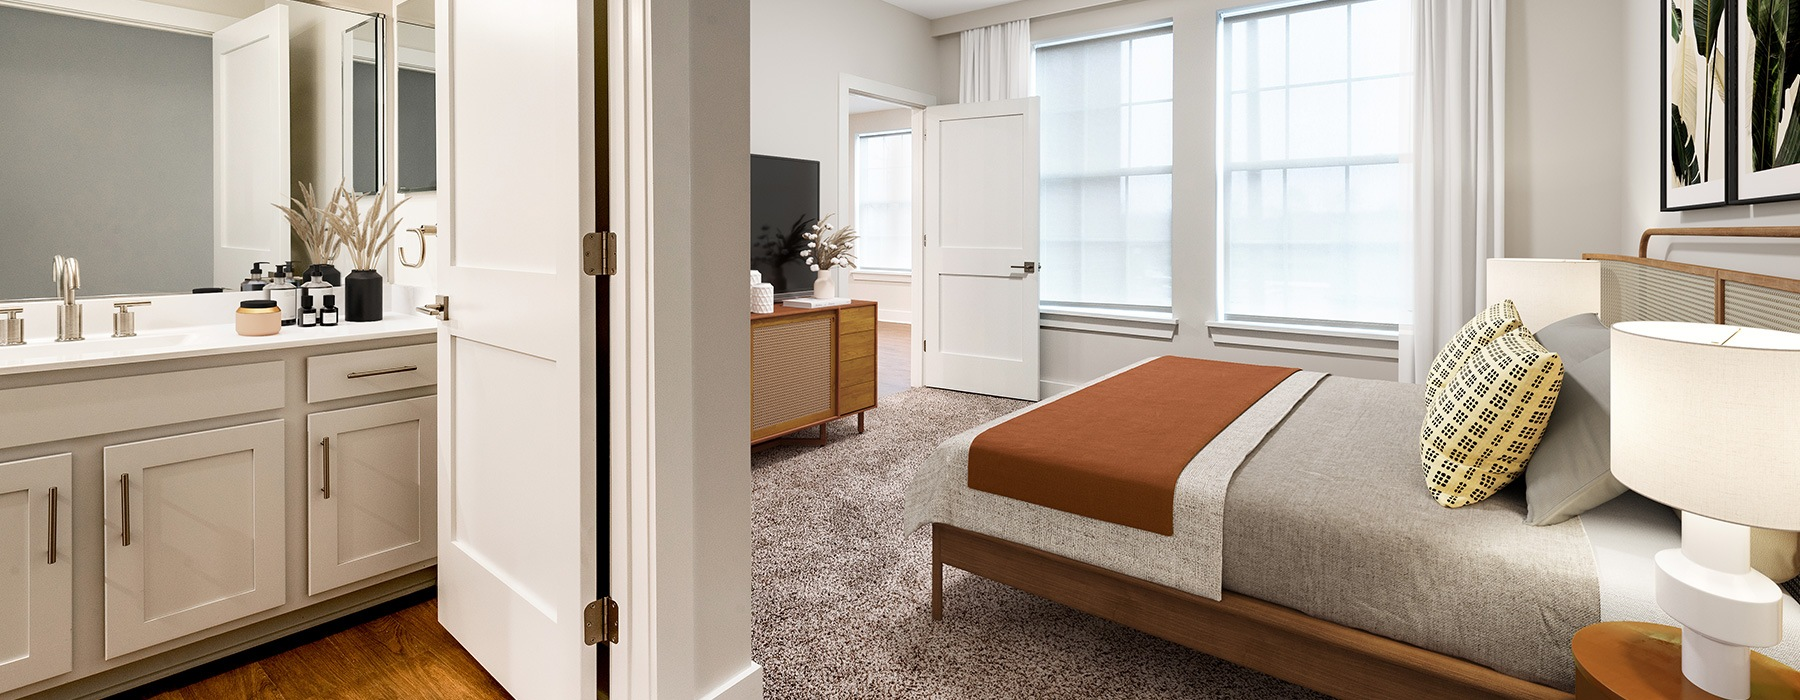 bedroom with double-door opening to bathroom and spacious areas